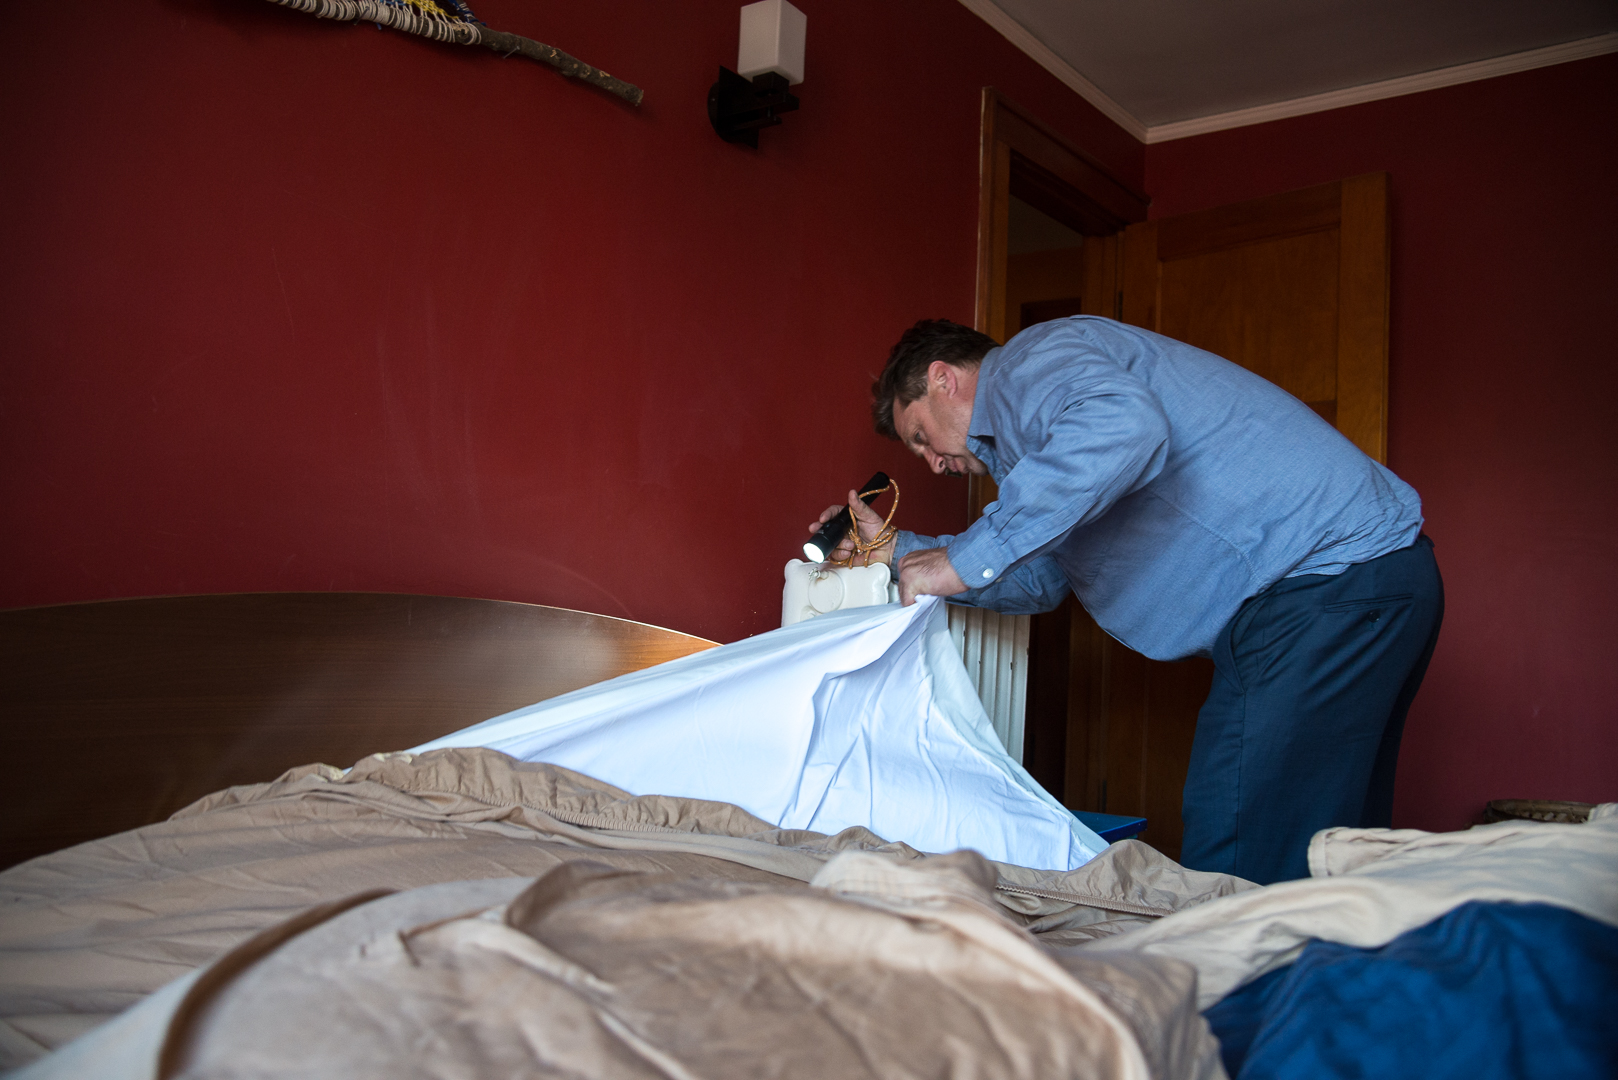 Checking for Bed Bugs - Bed Bug Guys